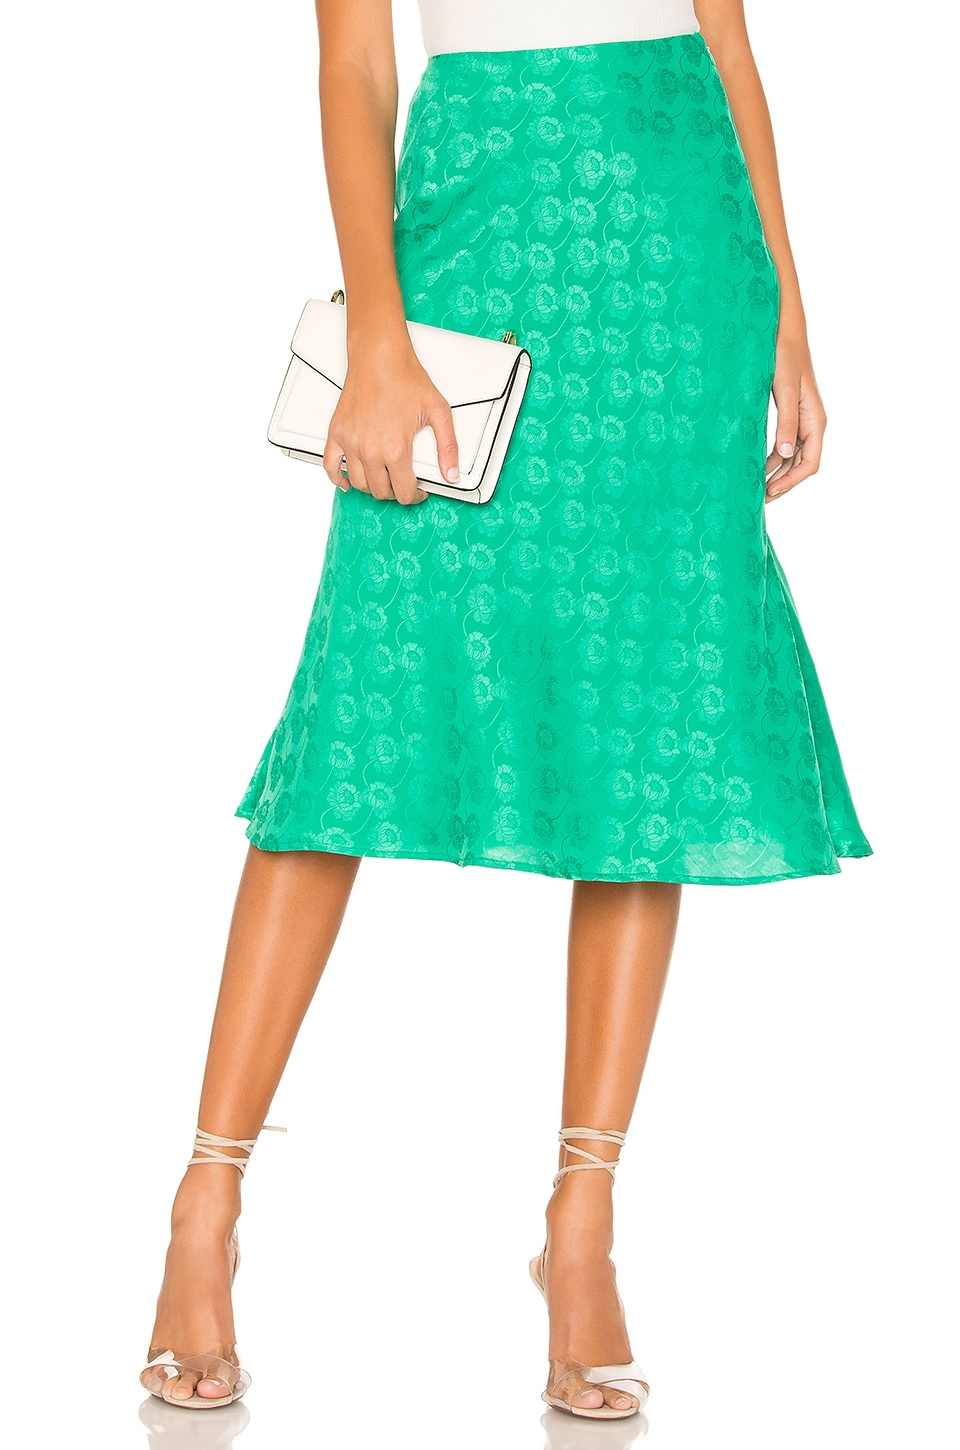 Privacy Please Liliana Midi Skirt in Kelly Green